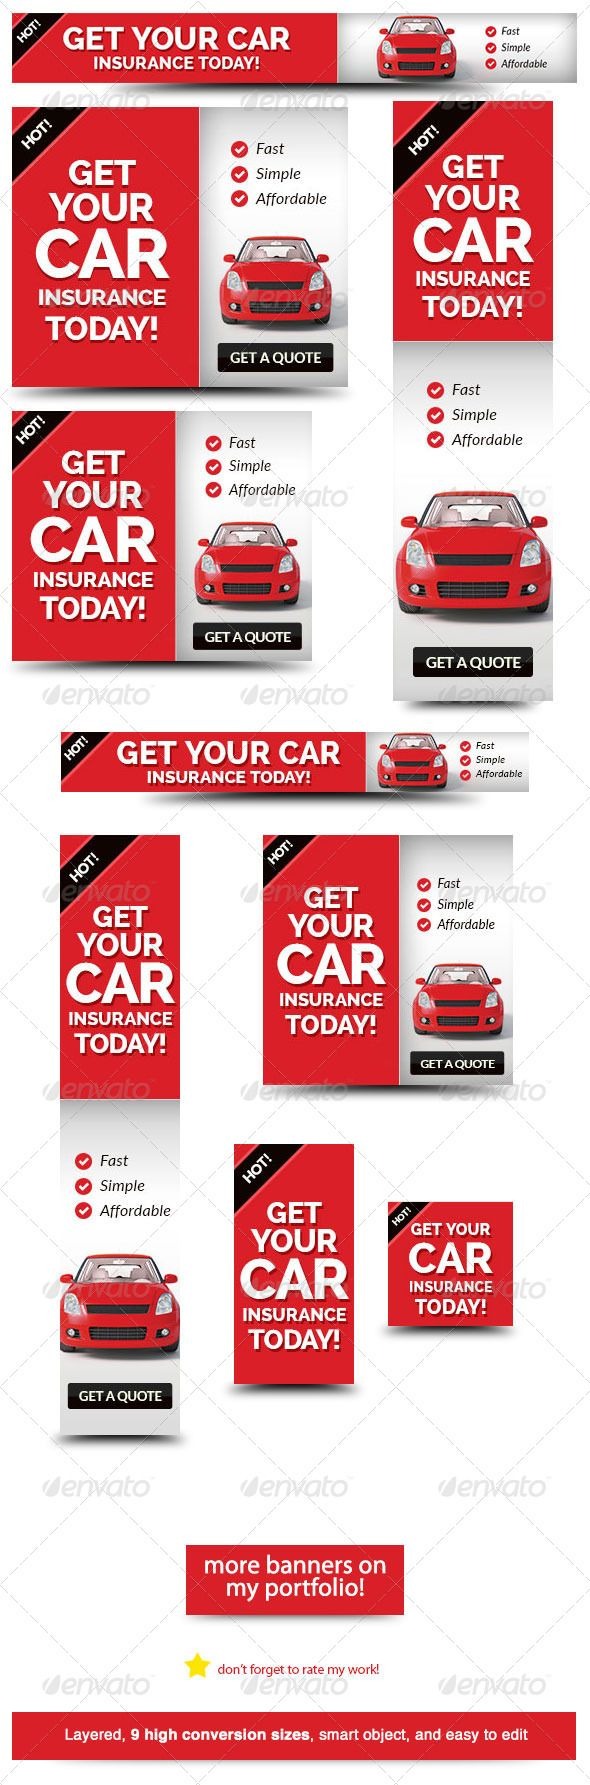 Cheap Car Insurance Web Banner Ad Template PSD | Buy and Download: http://graphicriver.net/item/cheap-car-insurance-web-banner-ad/5726214?WT.ac=category_thumb&WT.z_author=admiral_adictus&ref=ksioks